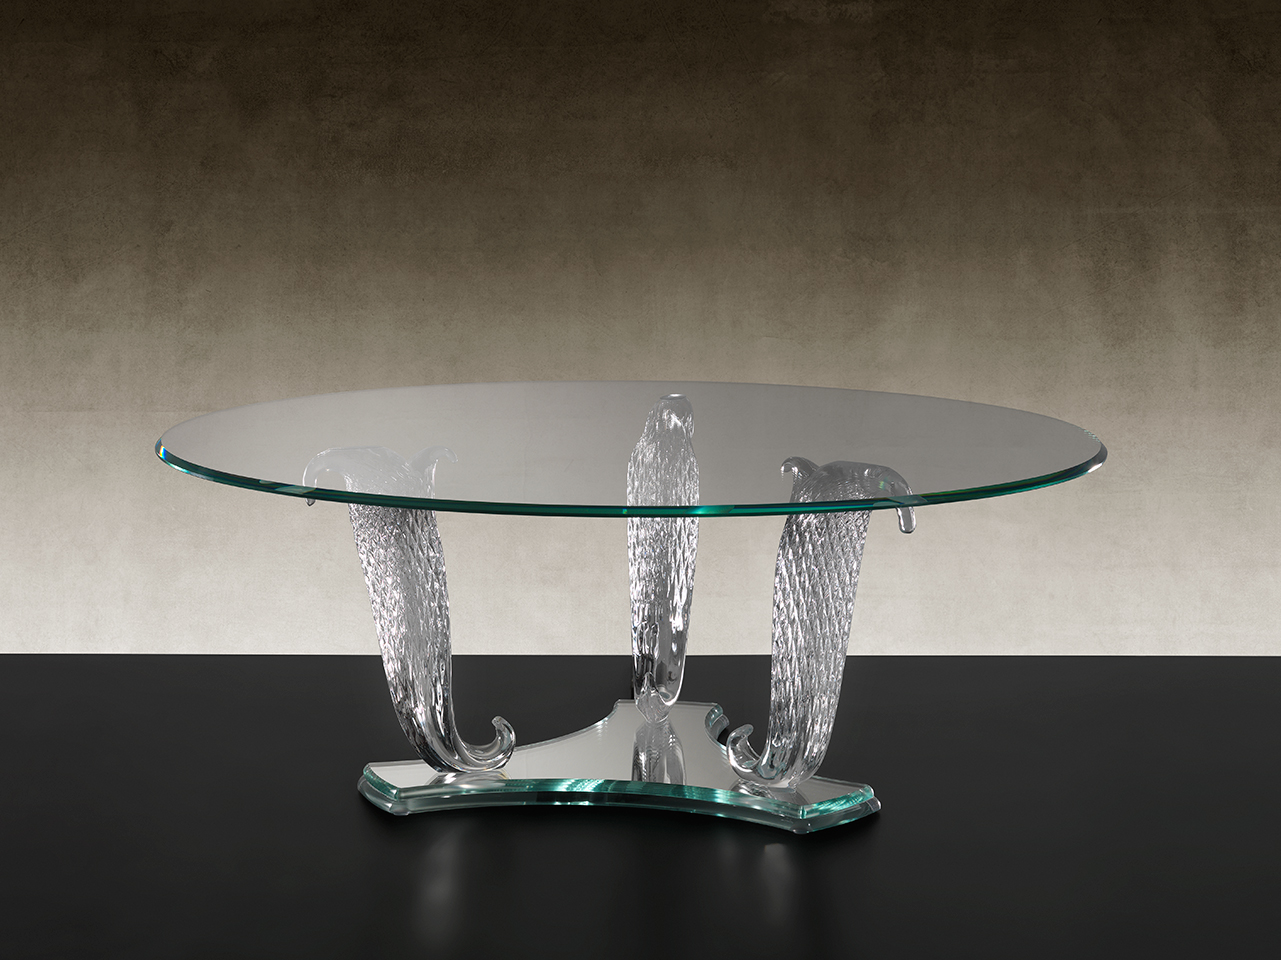 Canap Table Basse Mobiler De Luxe D Coration Magasin De  # Table Basse Transparente